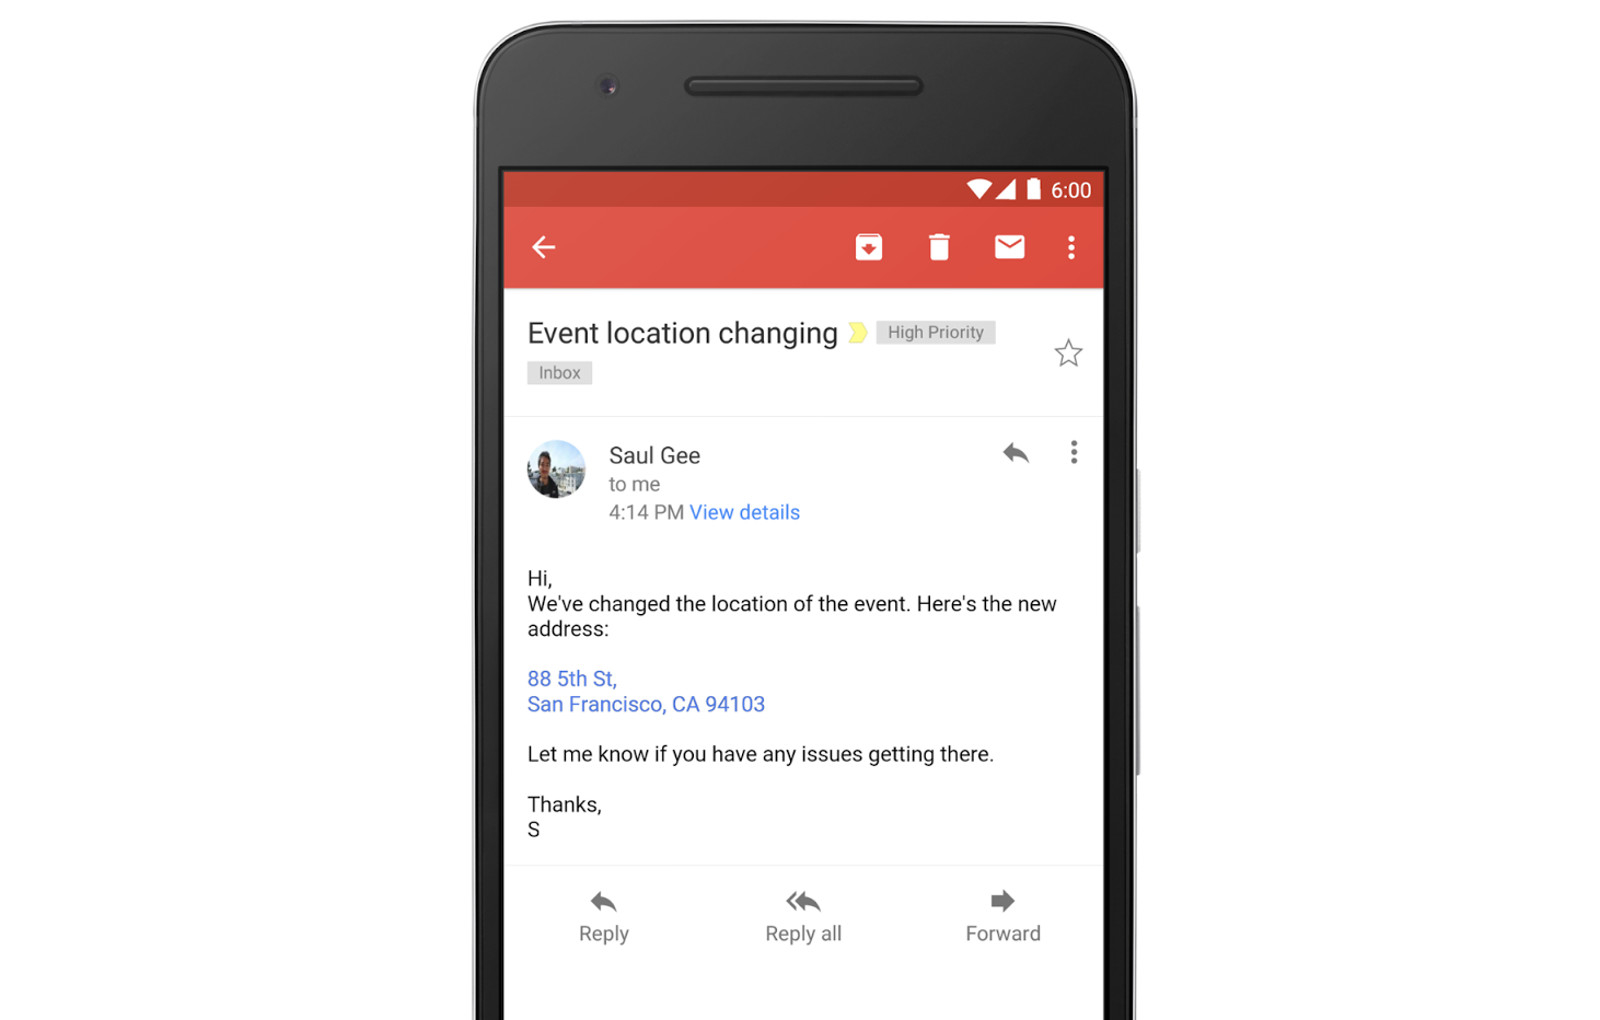 Phone Numbers and Addresses on Gmail App Now Appear as Links